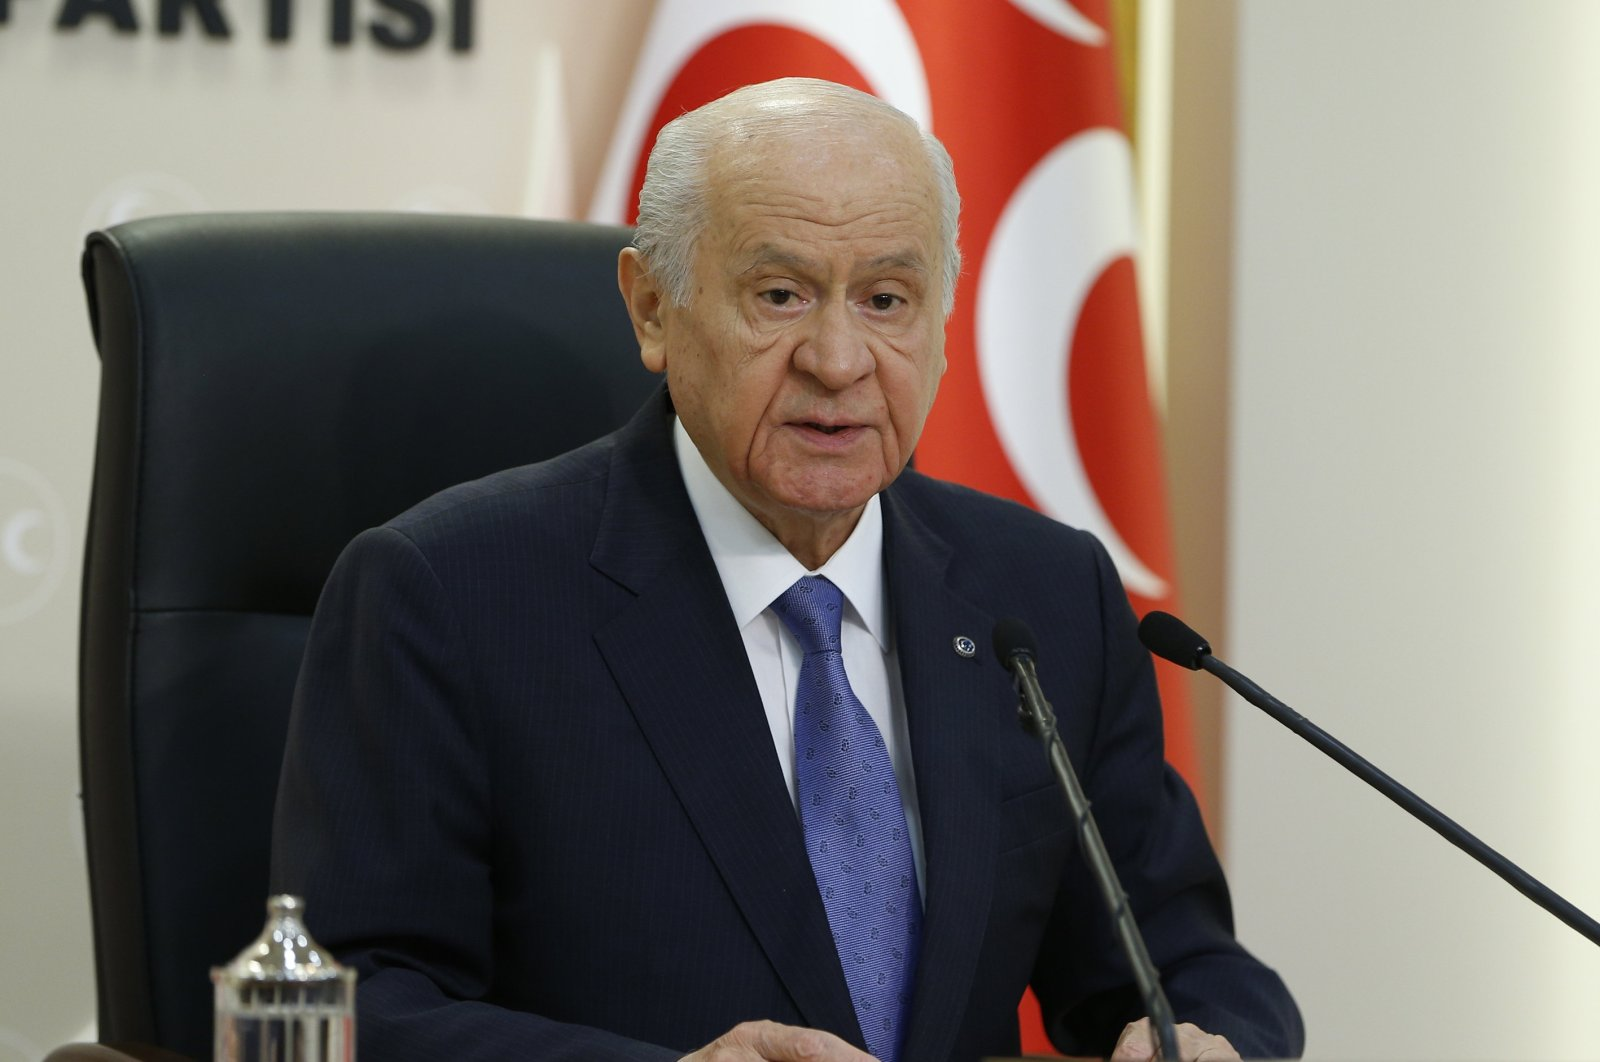 Nationalist Movement Party (MHP) Chairman Devlet Bahçeli speaks during a press conference in his party's Ankara headquarters, Turkey, Aug. 8, 2020 (AA Photo)